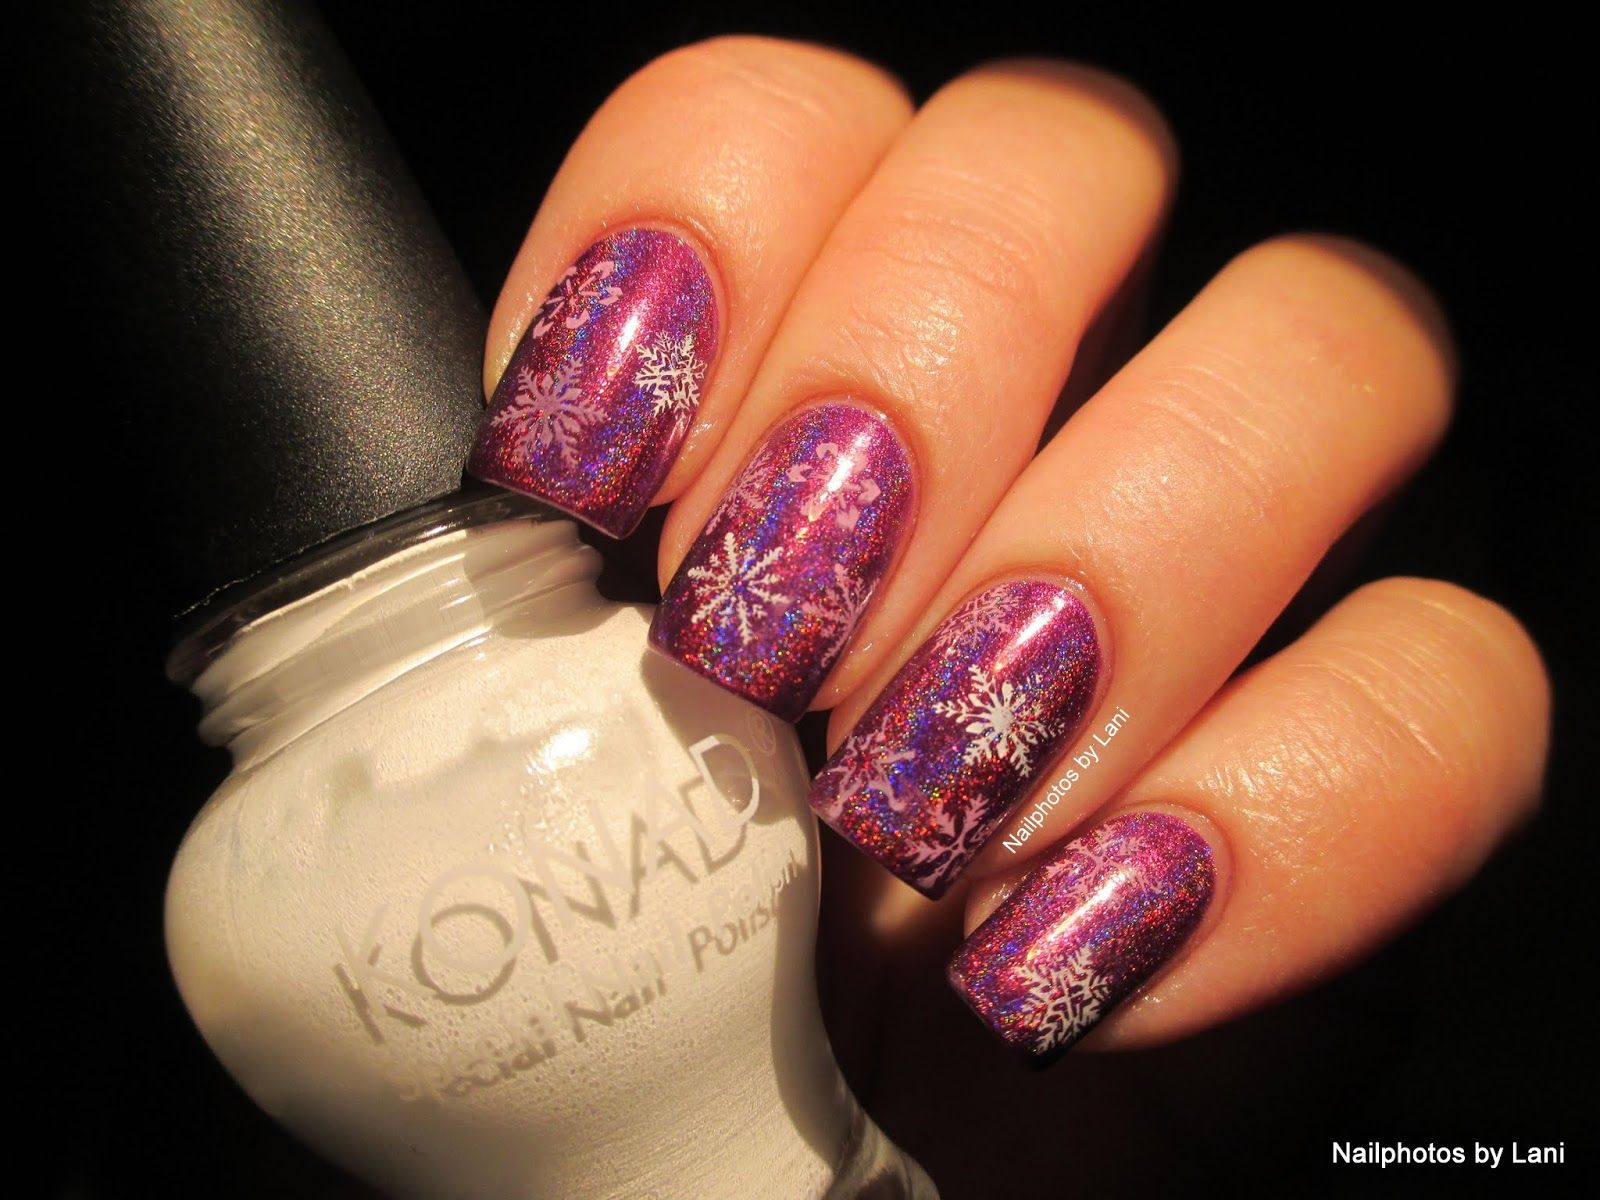 Nailphotos by Lani: Stamped Newspaper Nails with Flowers